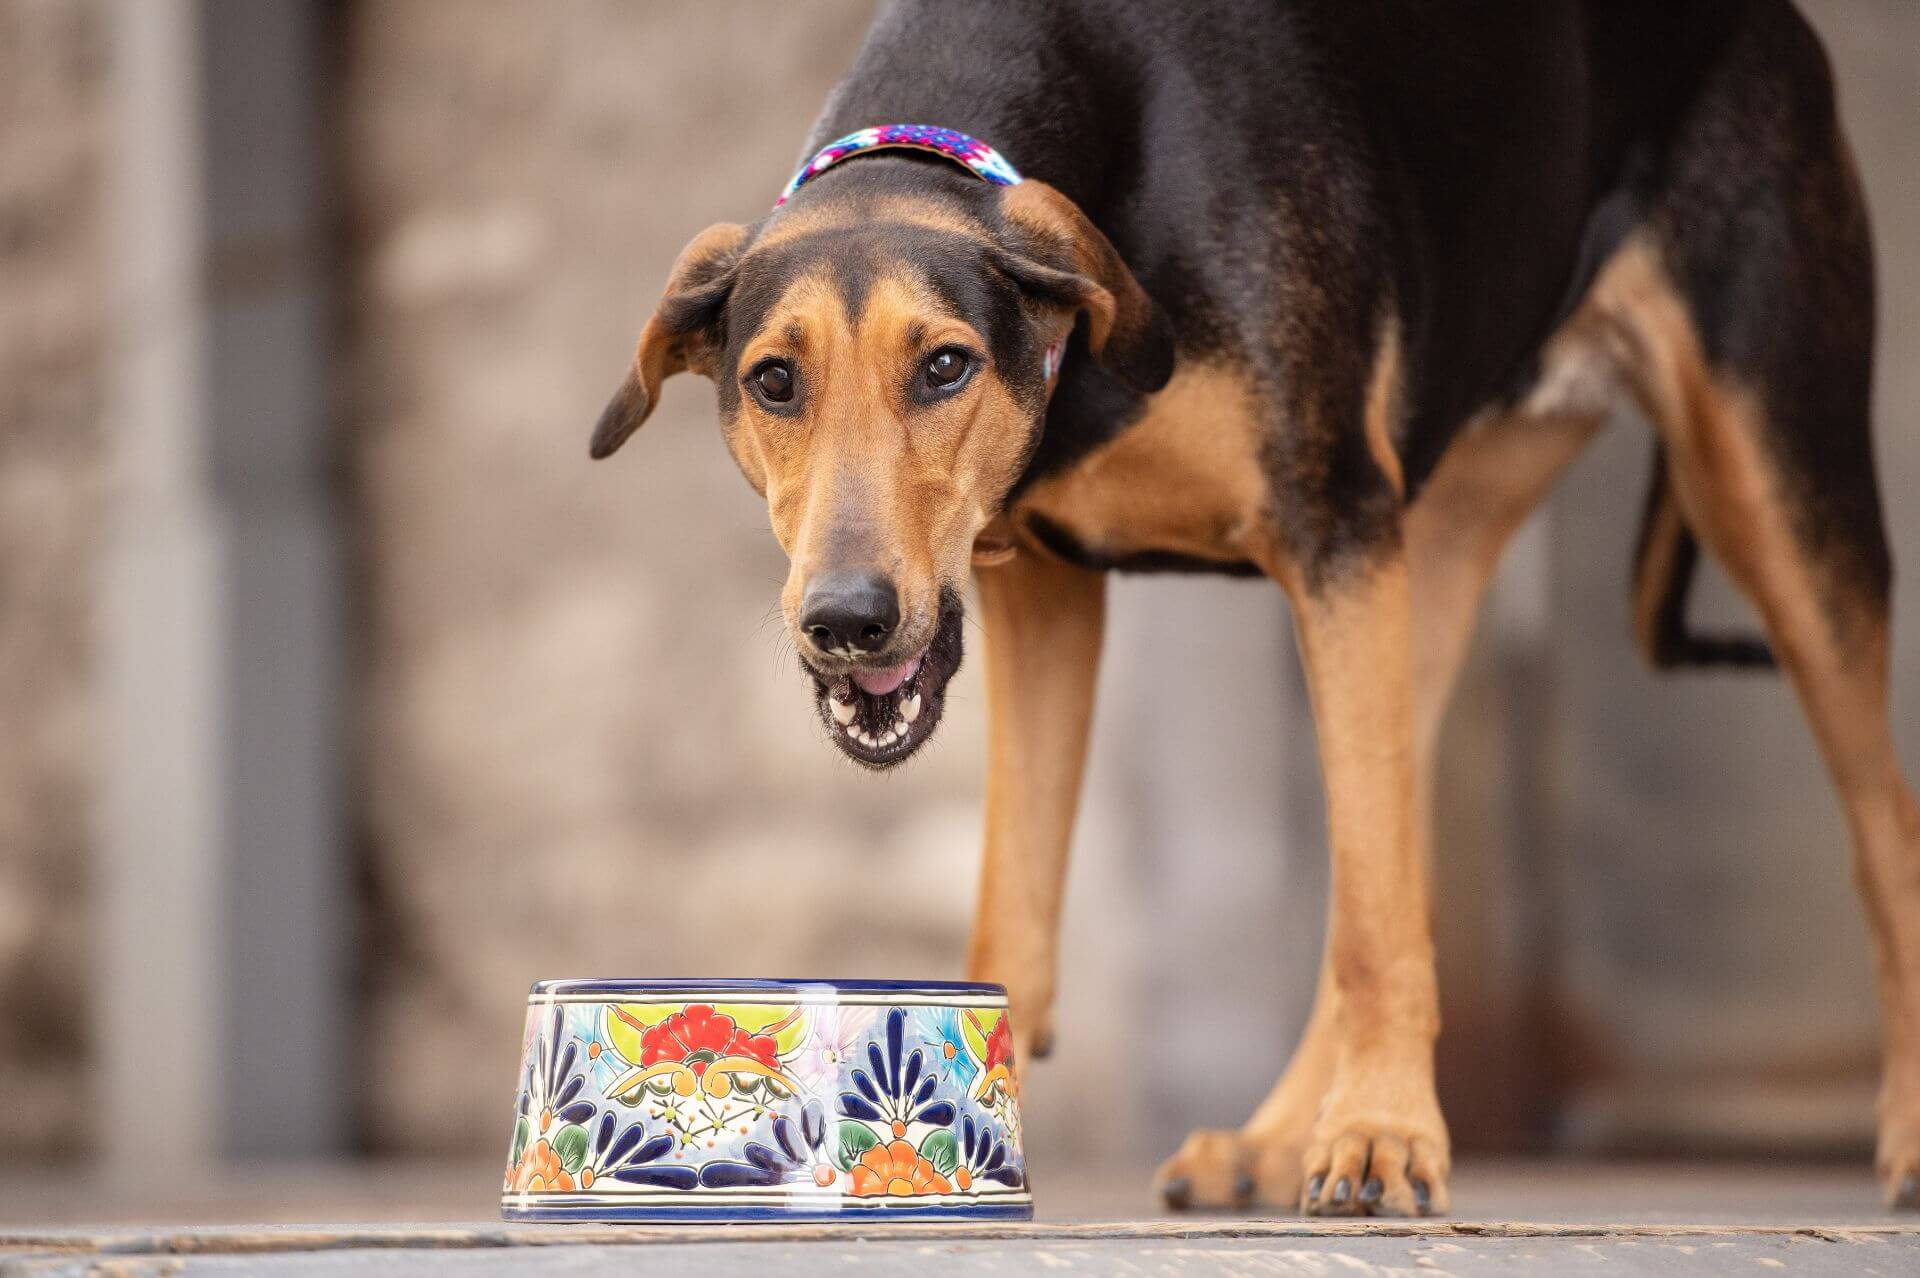 cute dog eating from ceramic bowl